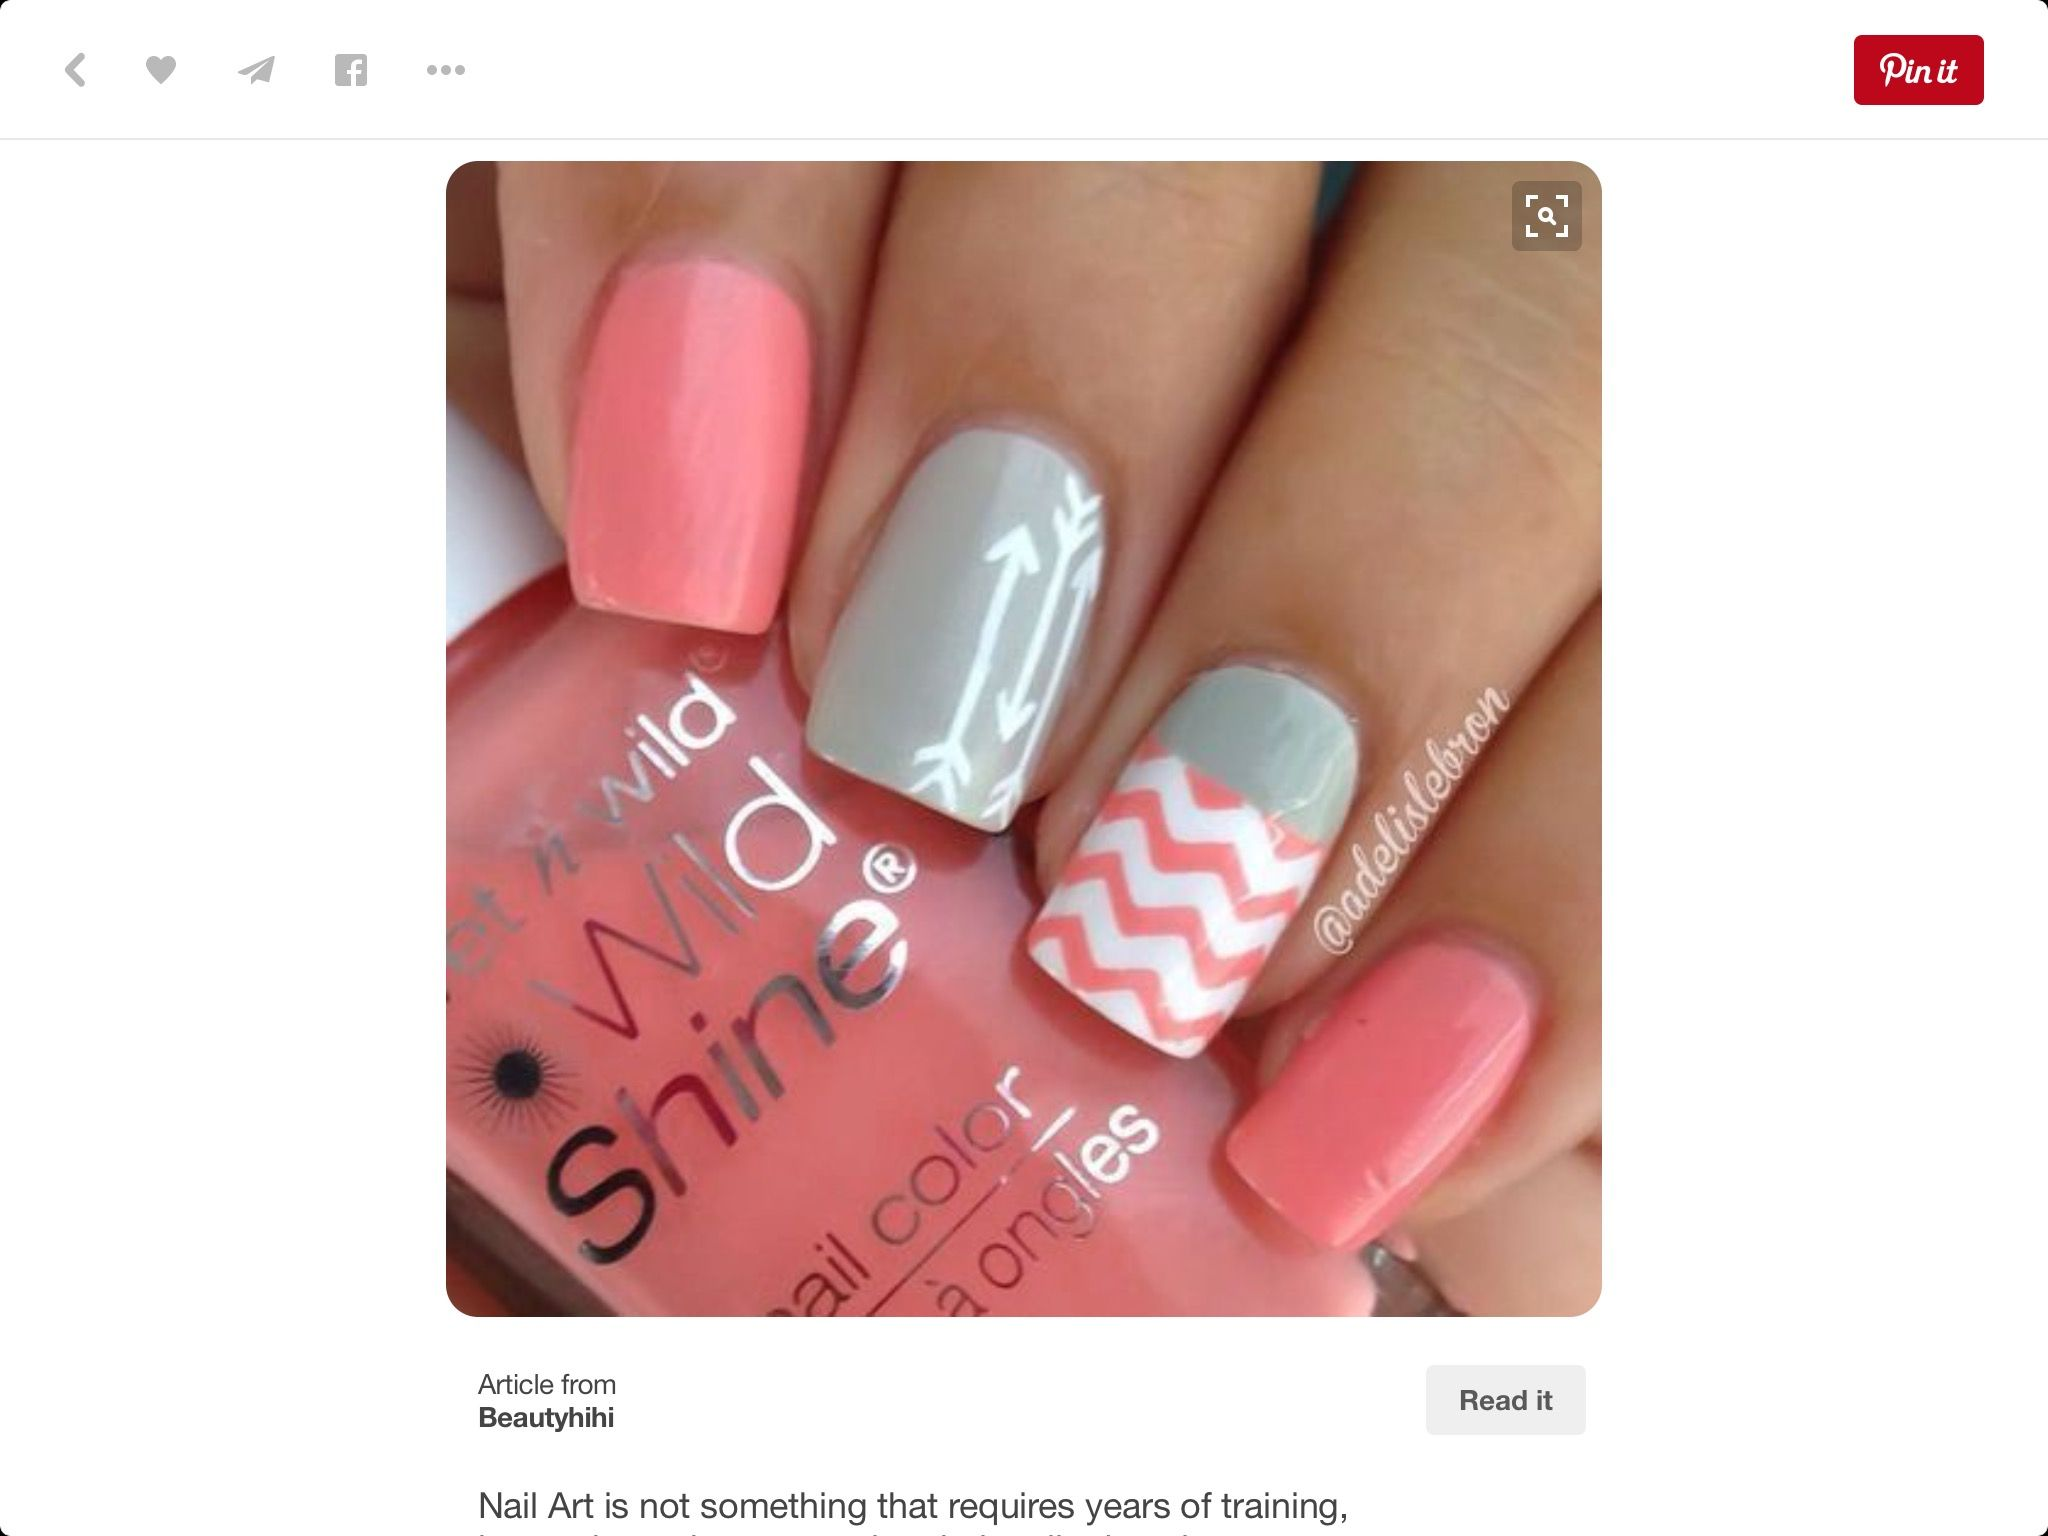 Pin by Cindy Couey on Nail thoughts | Pinterest | Nail nail ...